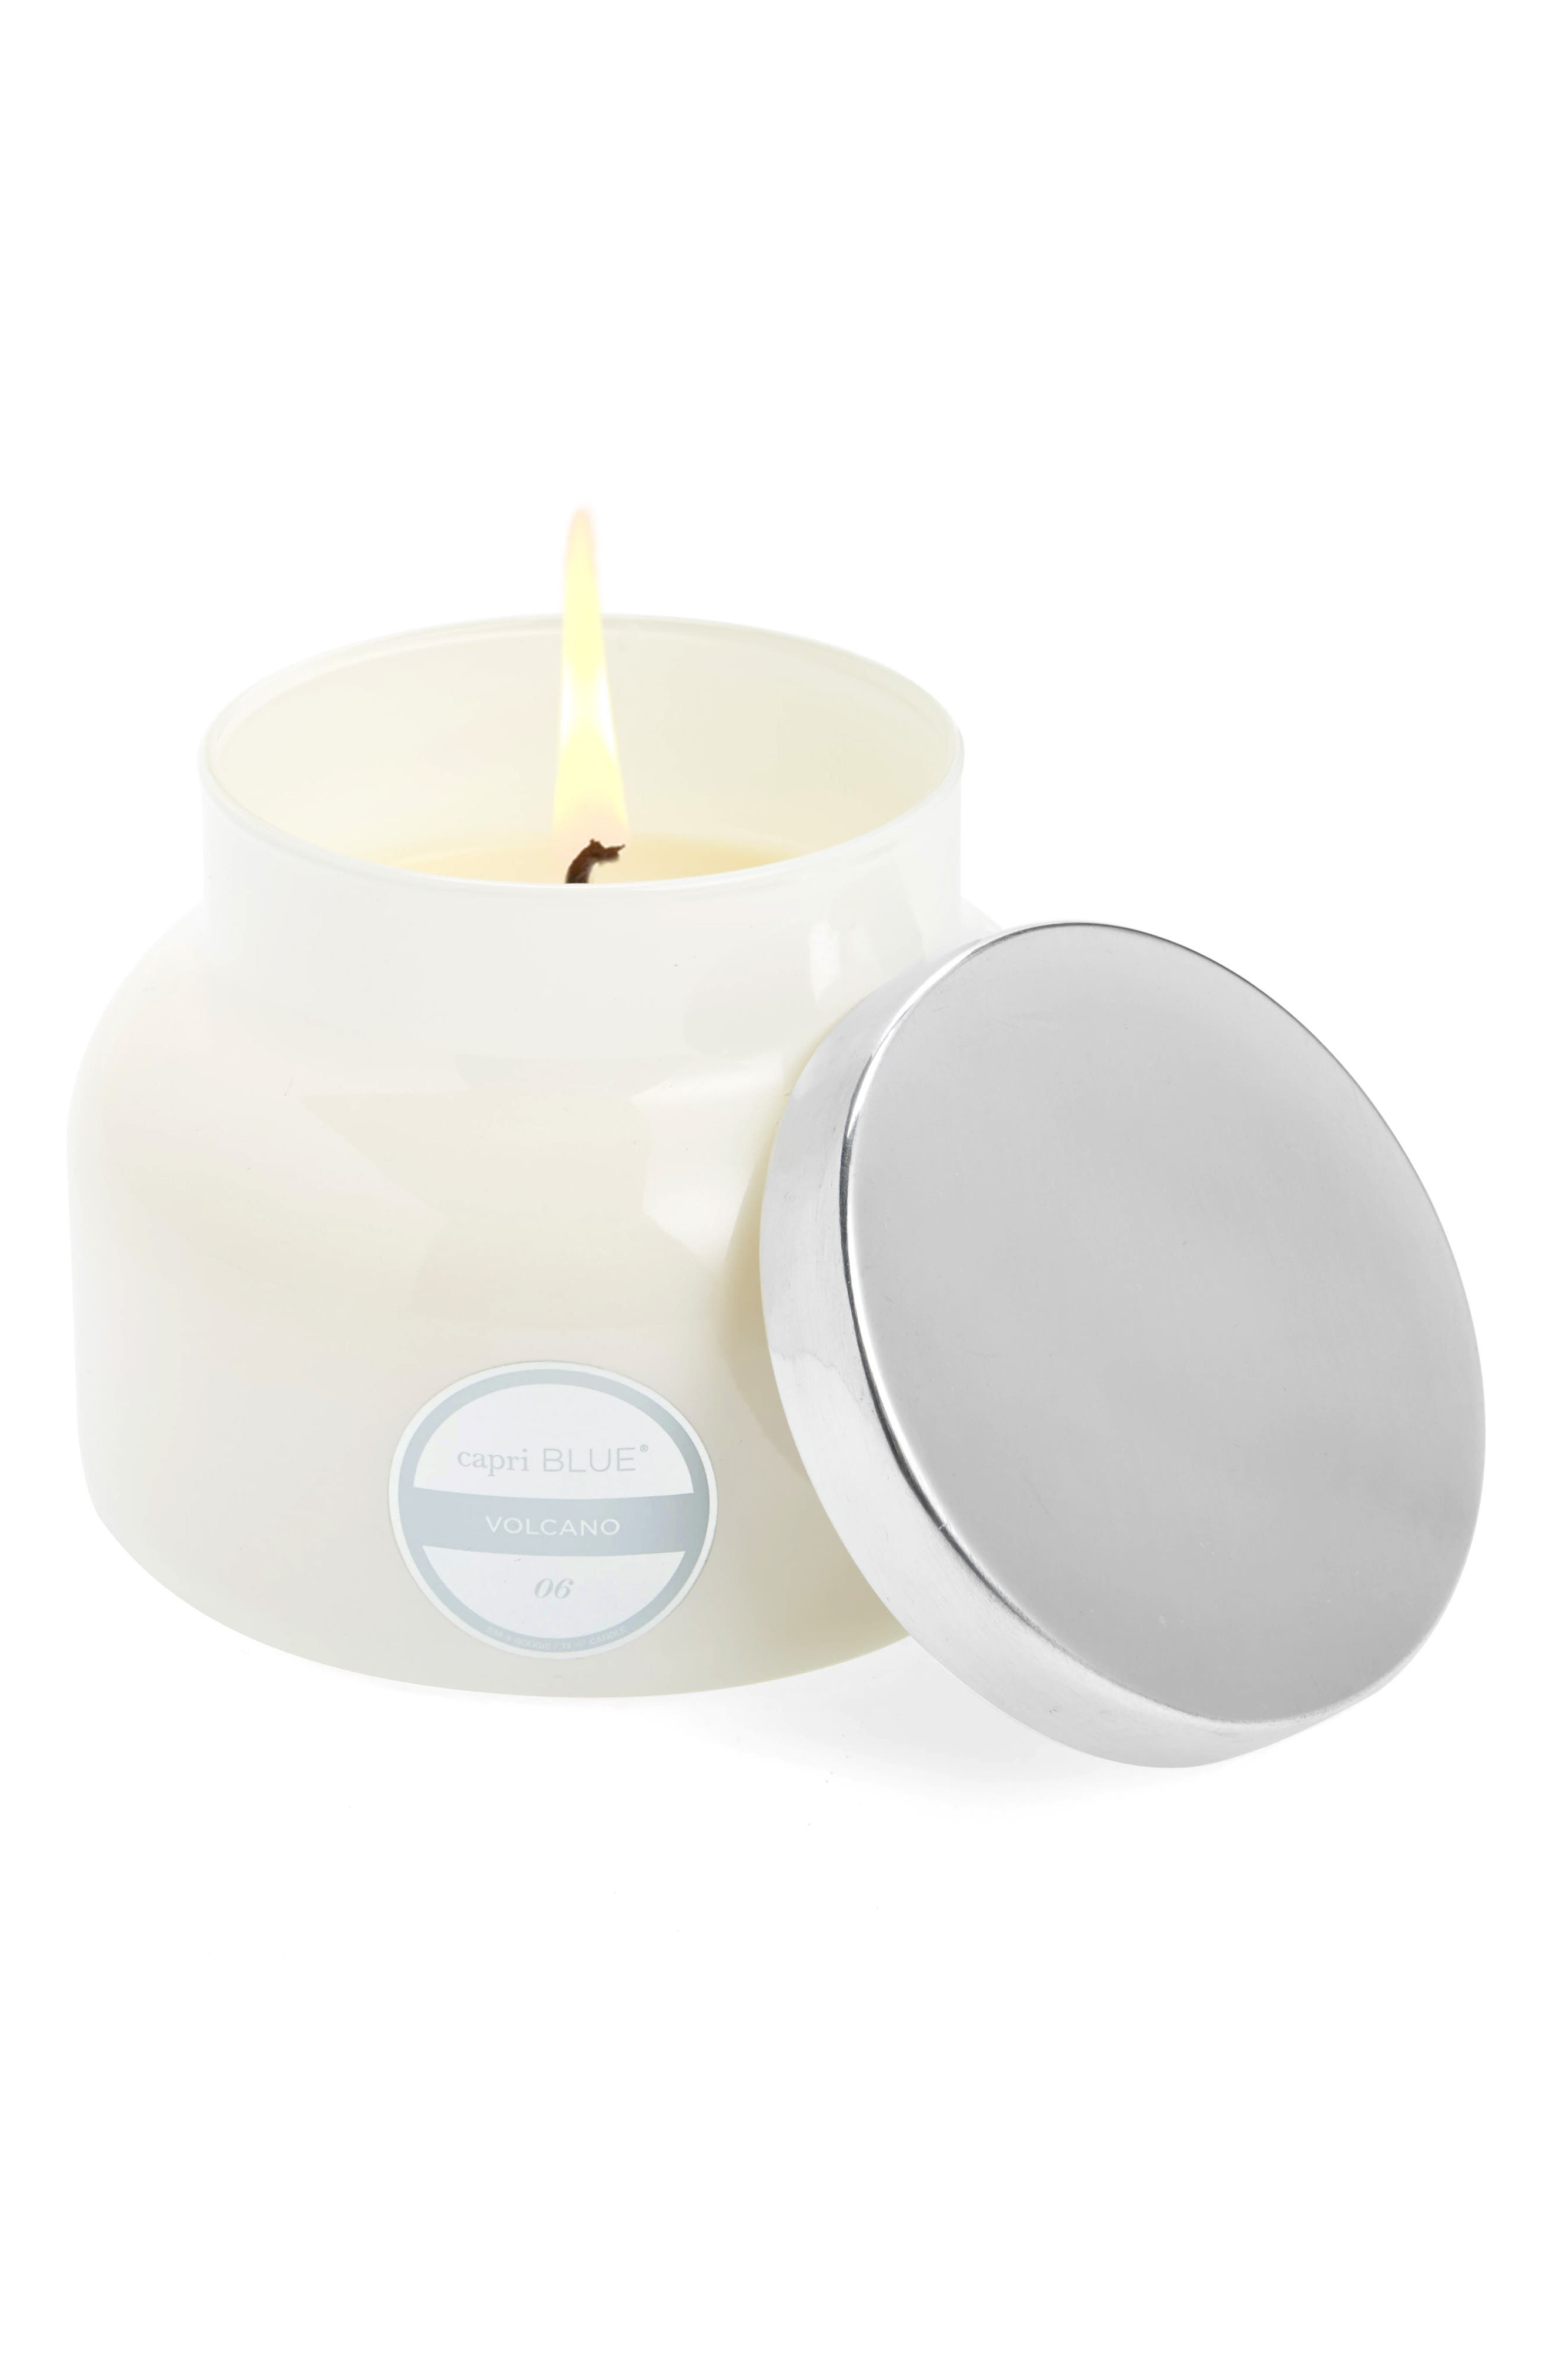 Volcano White Signature Jar Candle,                             Main thumbnail 1, color,                             Volcano